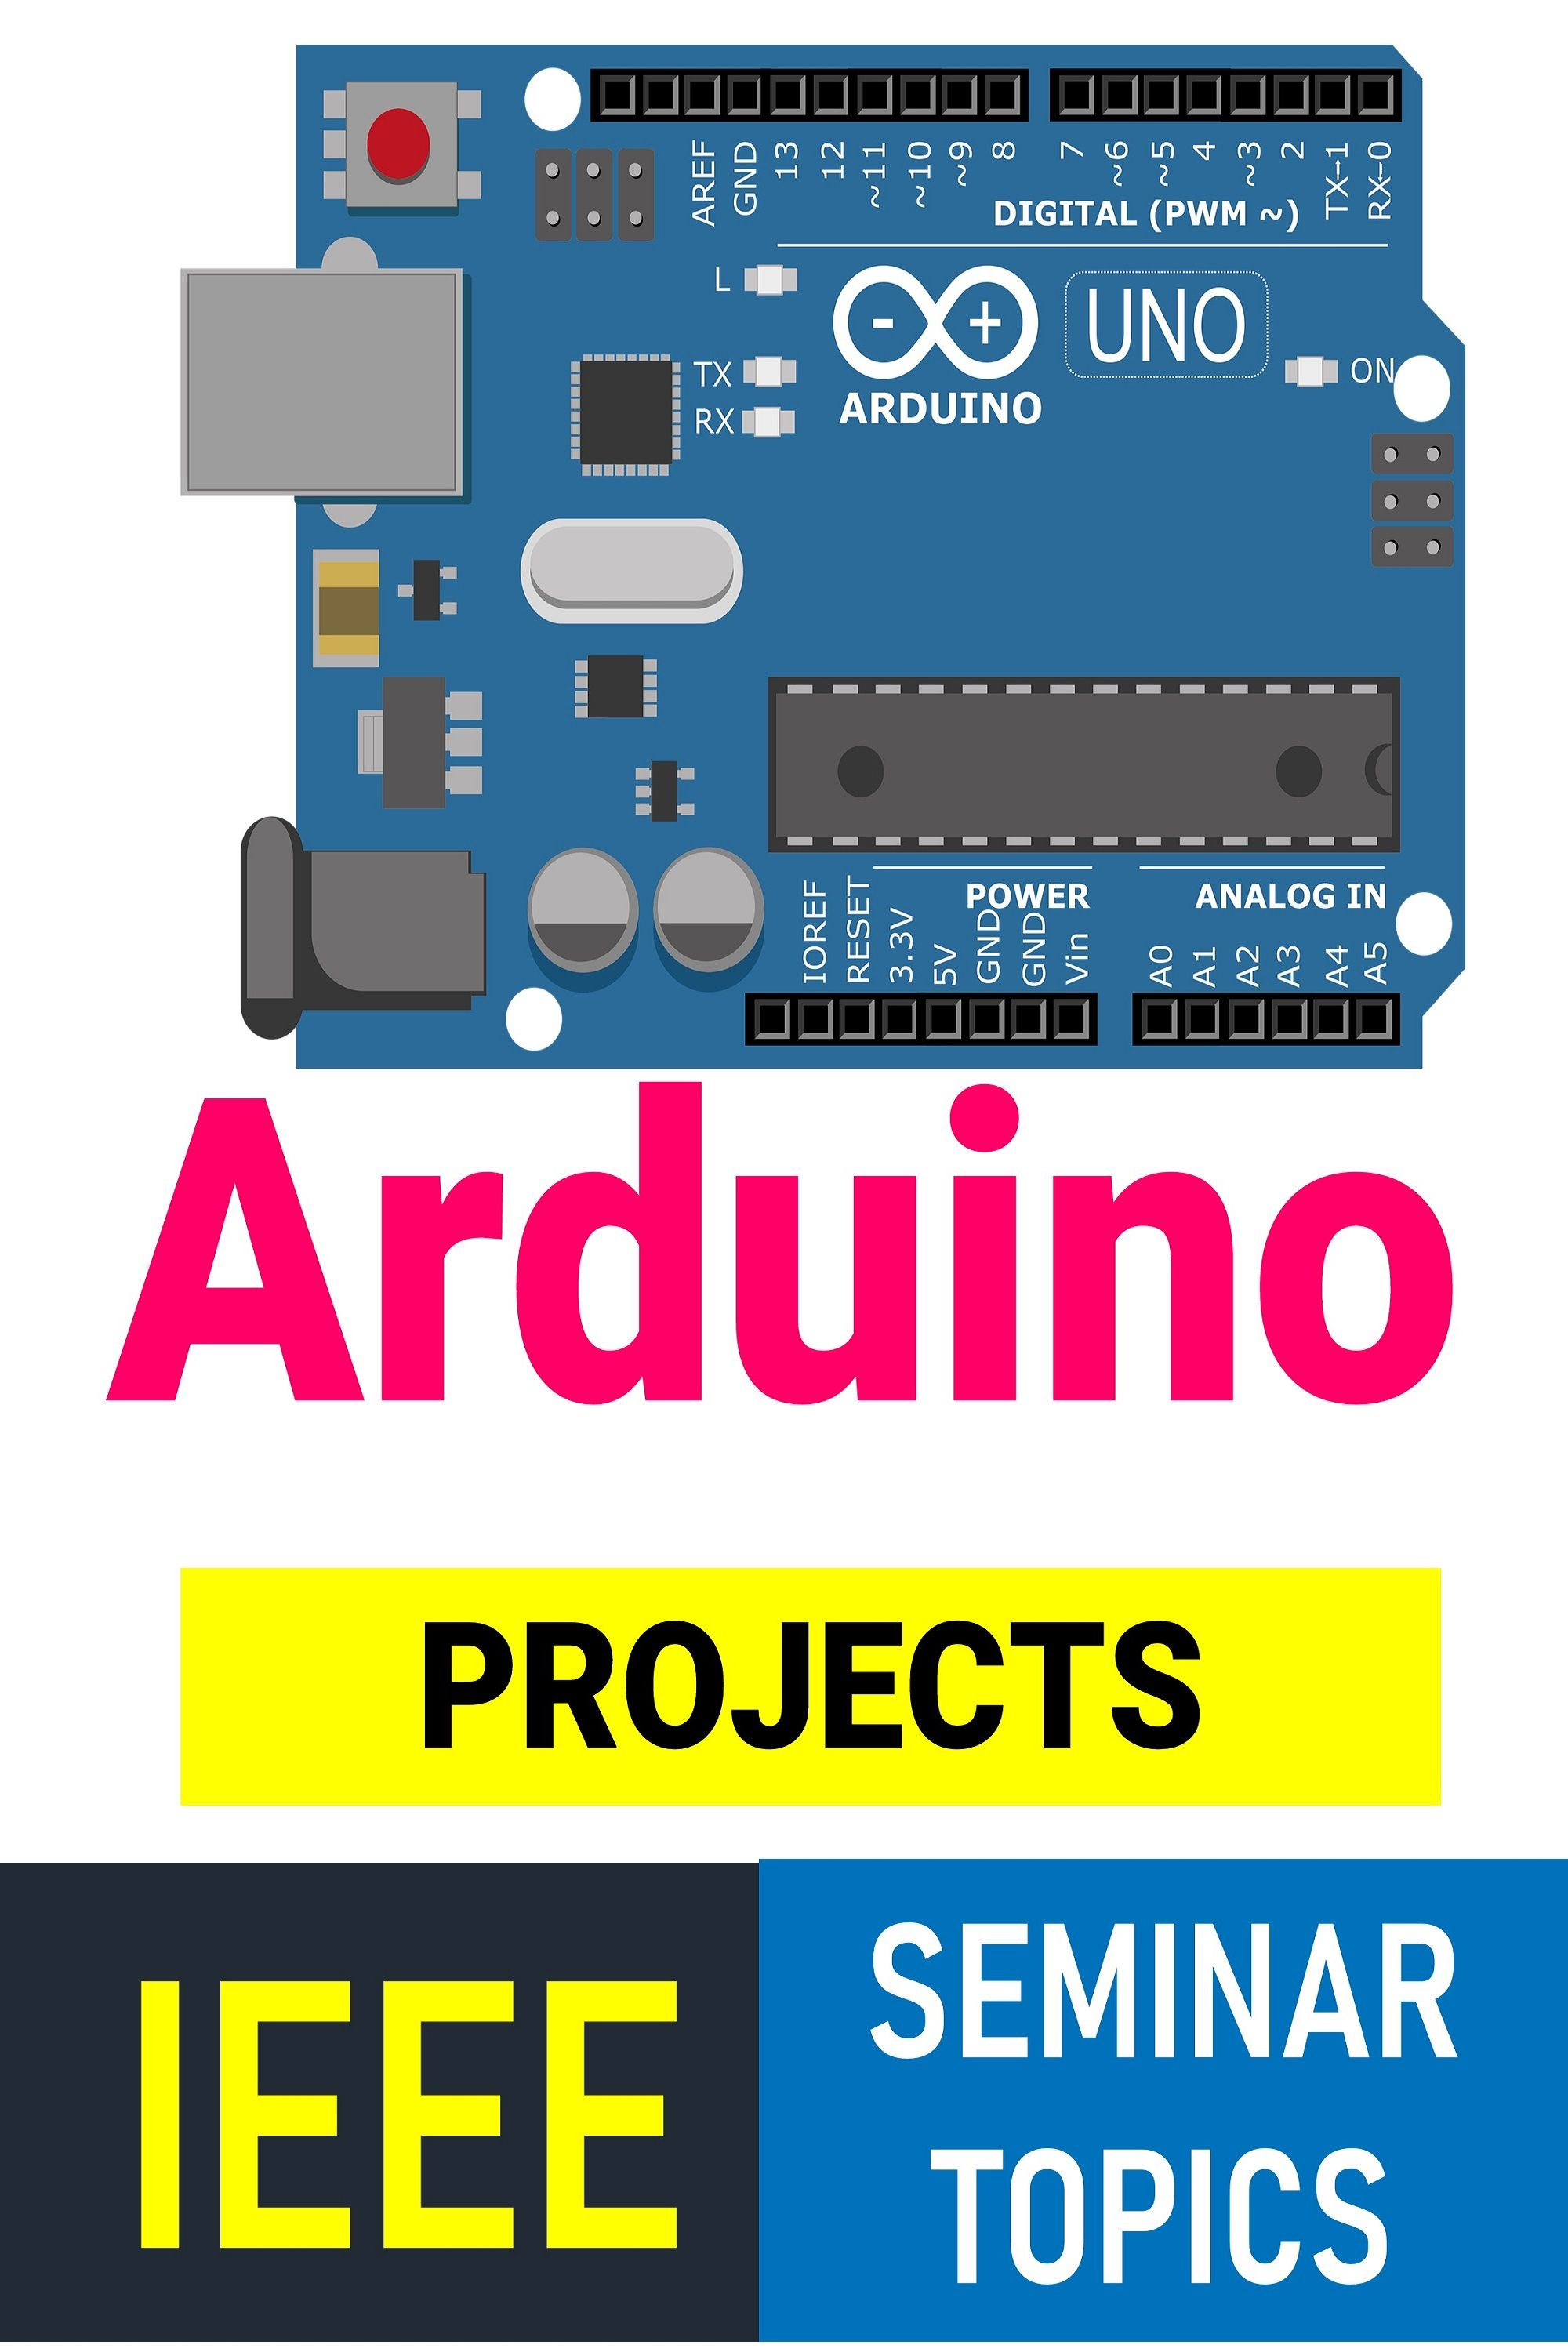 40 Ieee Papers On Arduino Projects Seminar Electronic